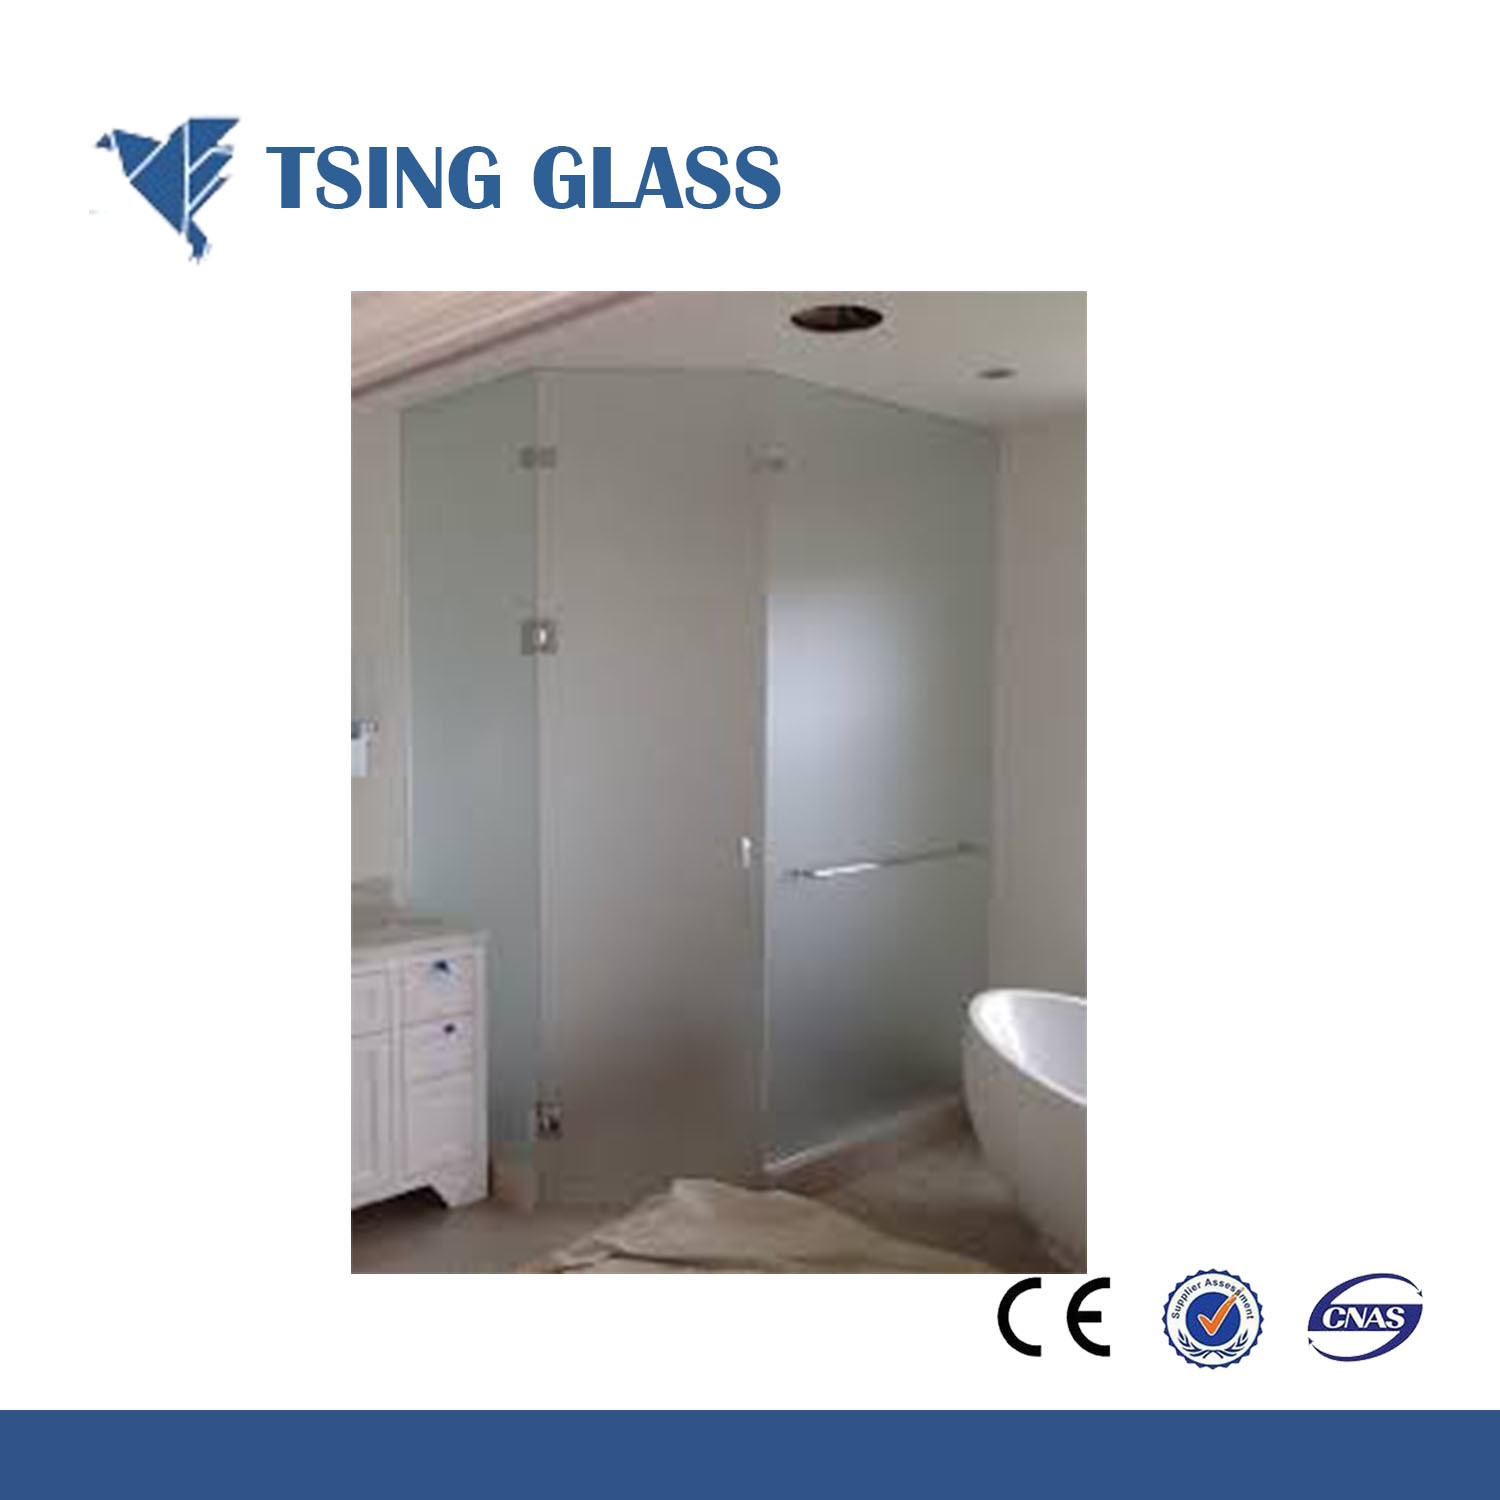 Translucent Glass / Frosted Glass / Frosting Glass for Bathroom Door  sc 1 st  Qingdao Tsing Glass Co. Ltd. & China Translucent Glass / Frosted Glass / Frosting Glass for ...